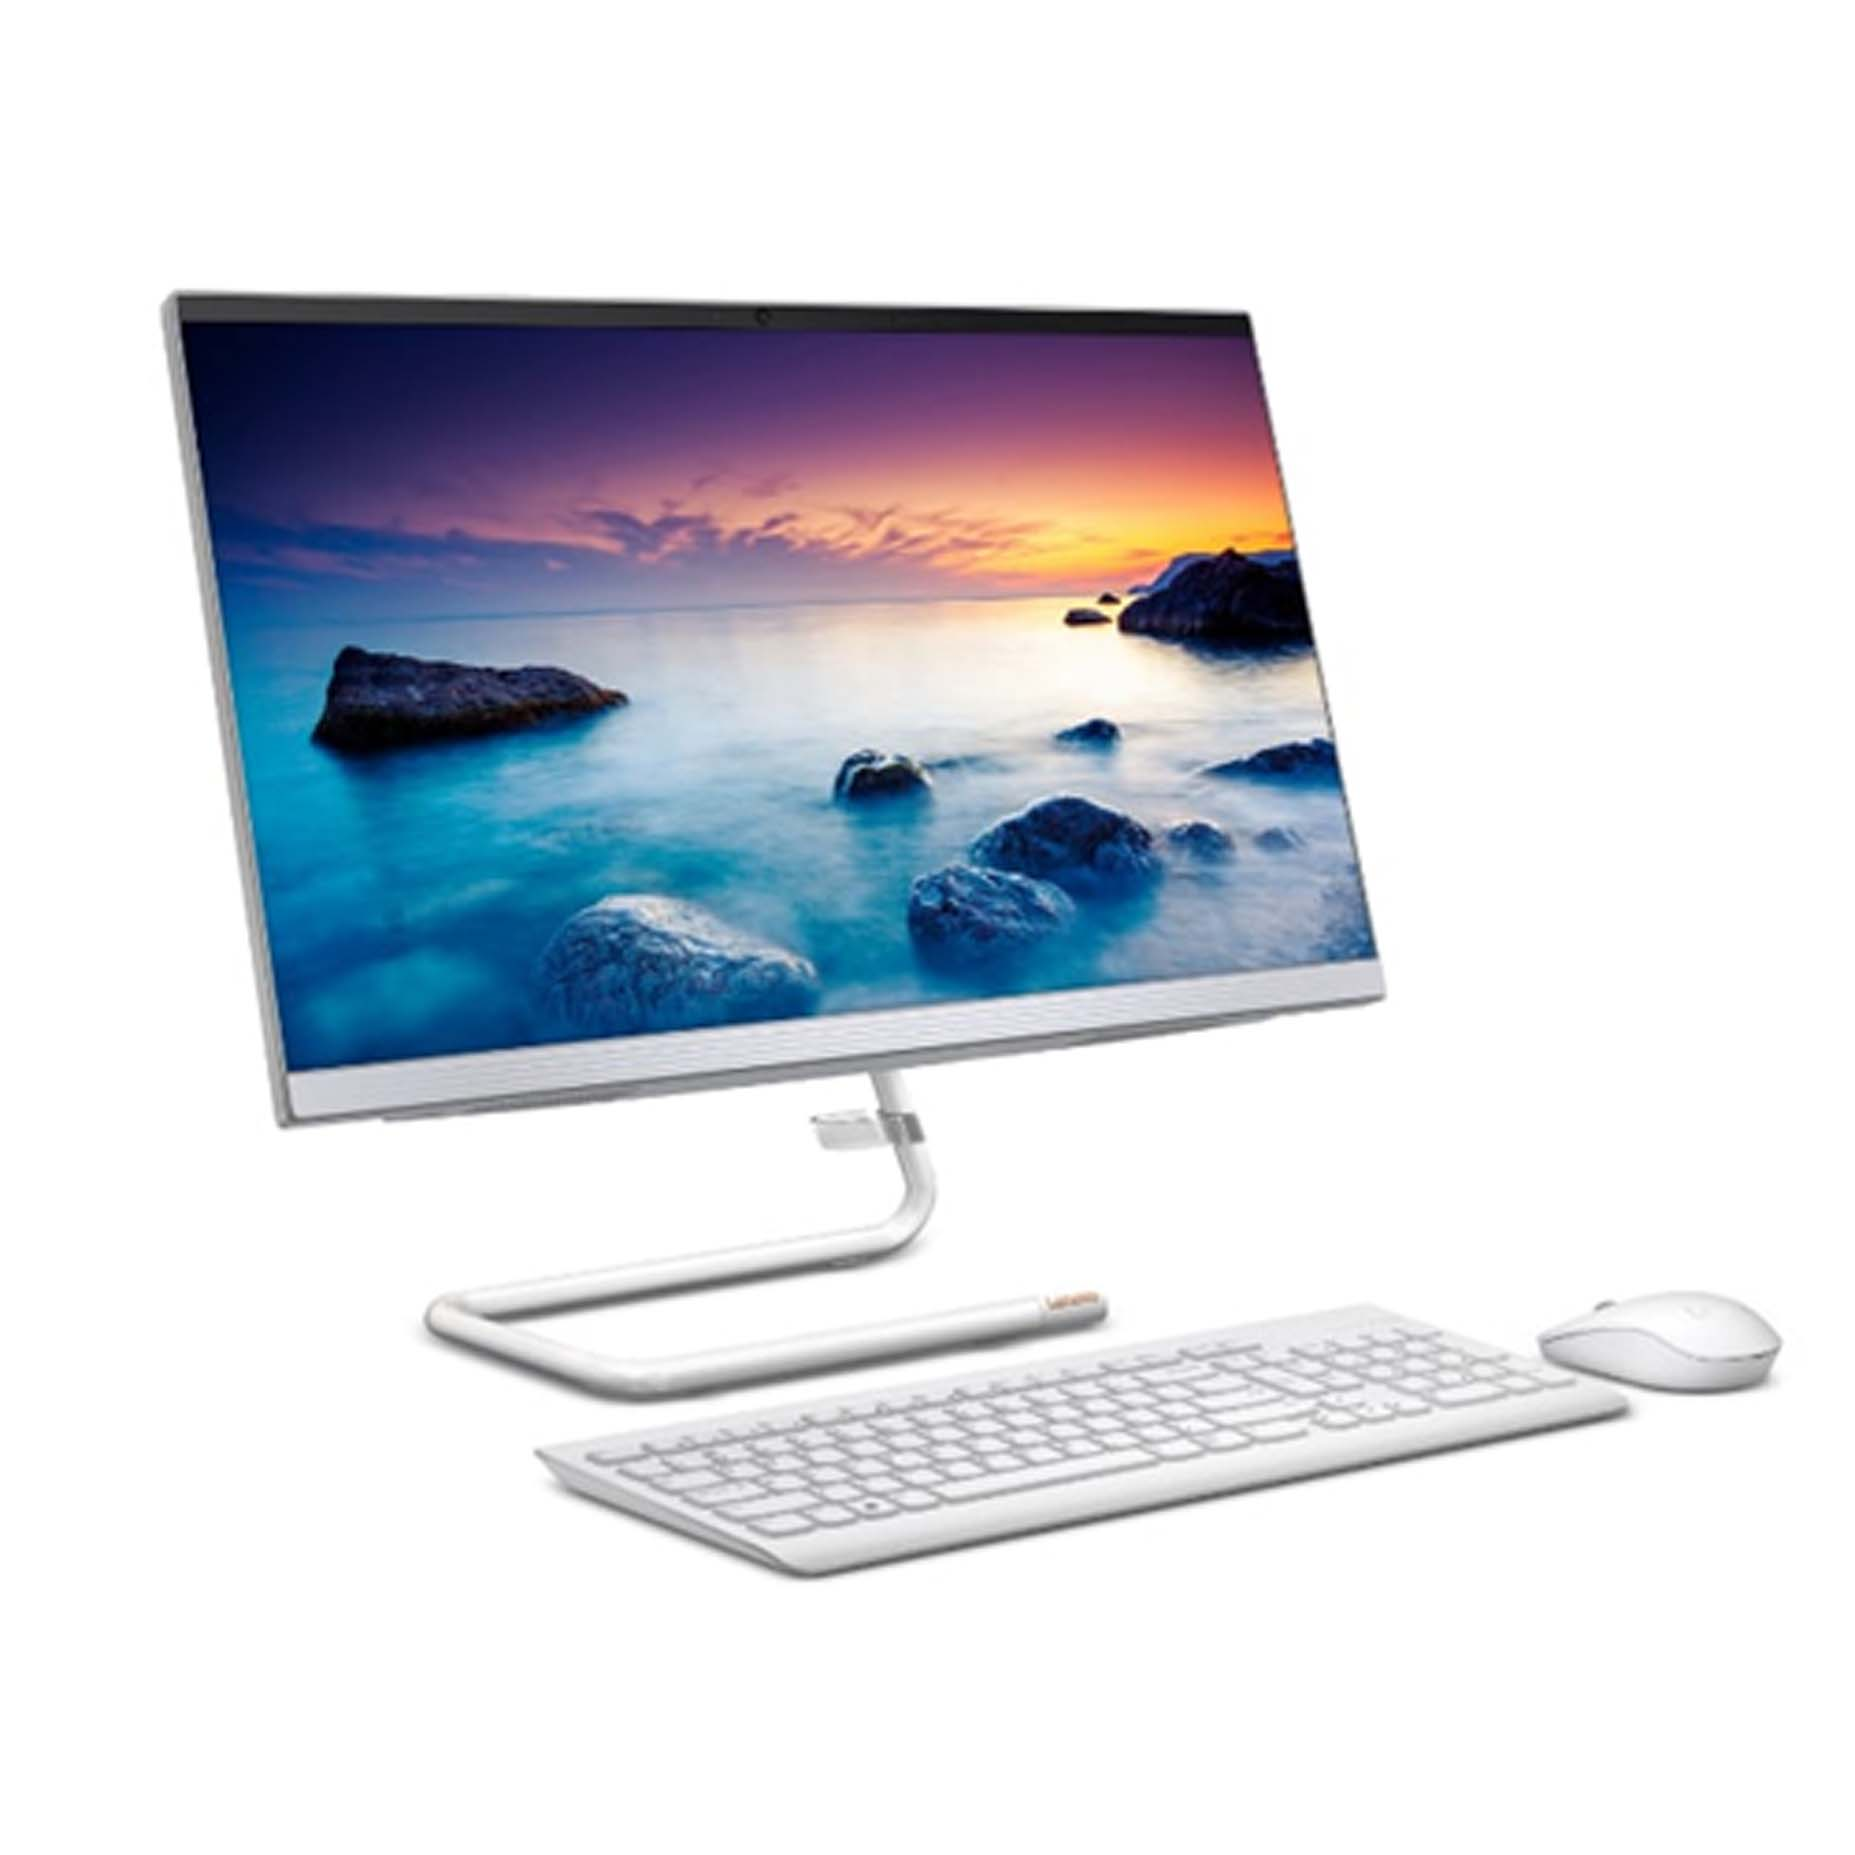 Harga Lenovo IdeaCentre A340-22ICB 5XID All in One i5-9400T 8GB 1TB Integrated DOS 21.5 Inch White